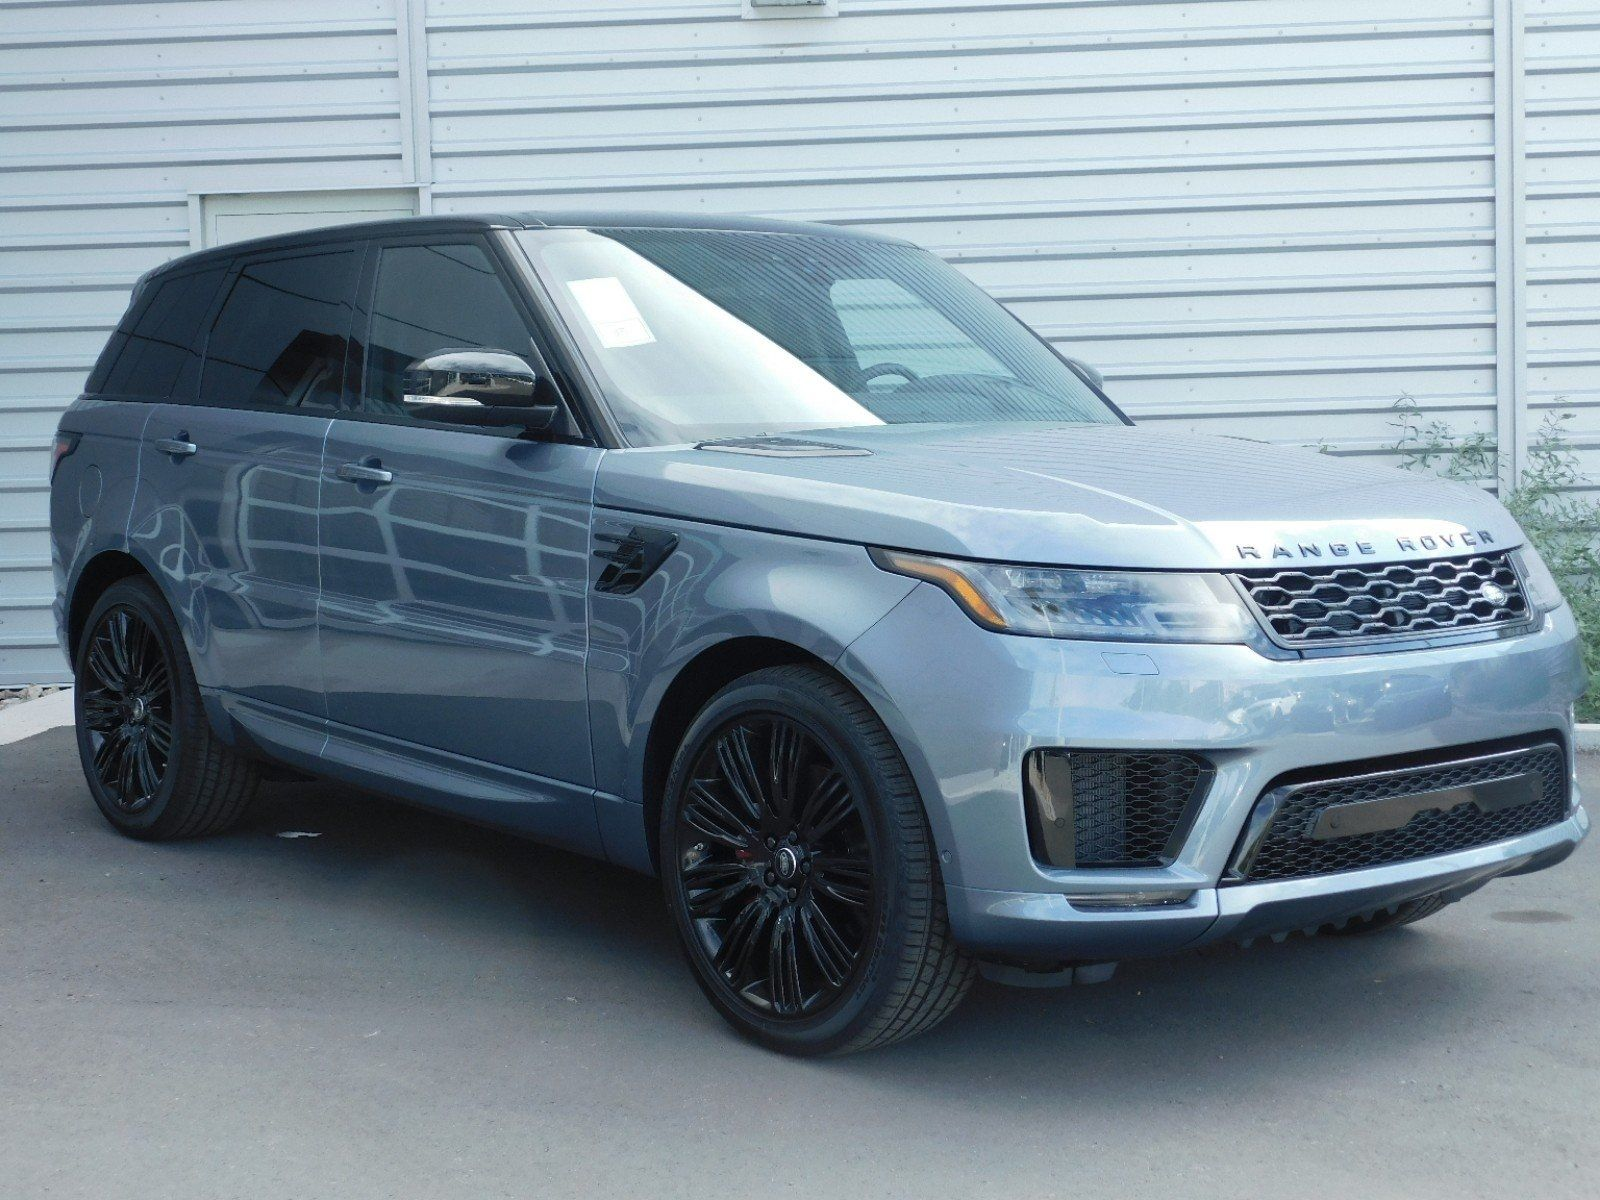 2019 Range Rover Sport Towing Capacity Price And Release Date